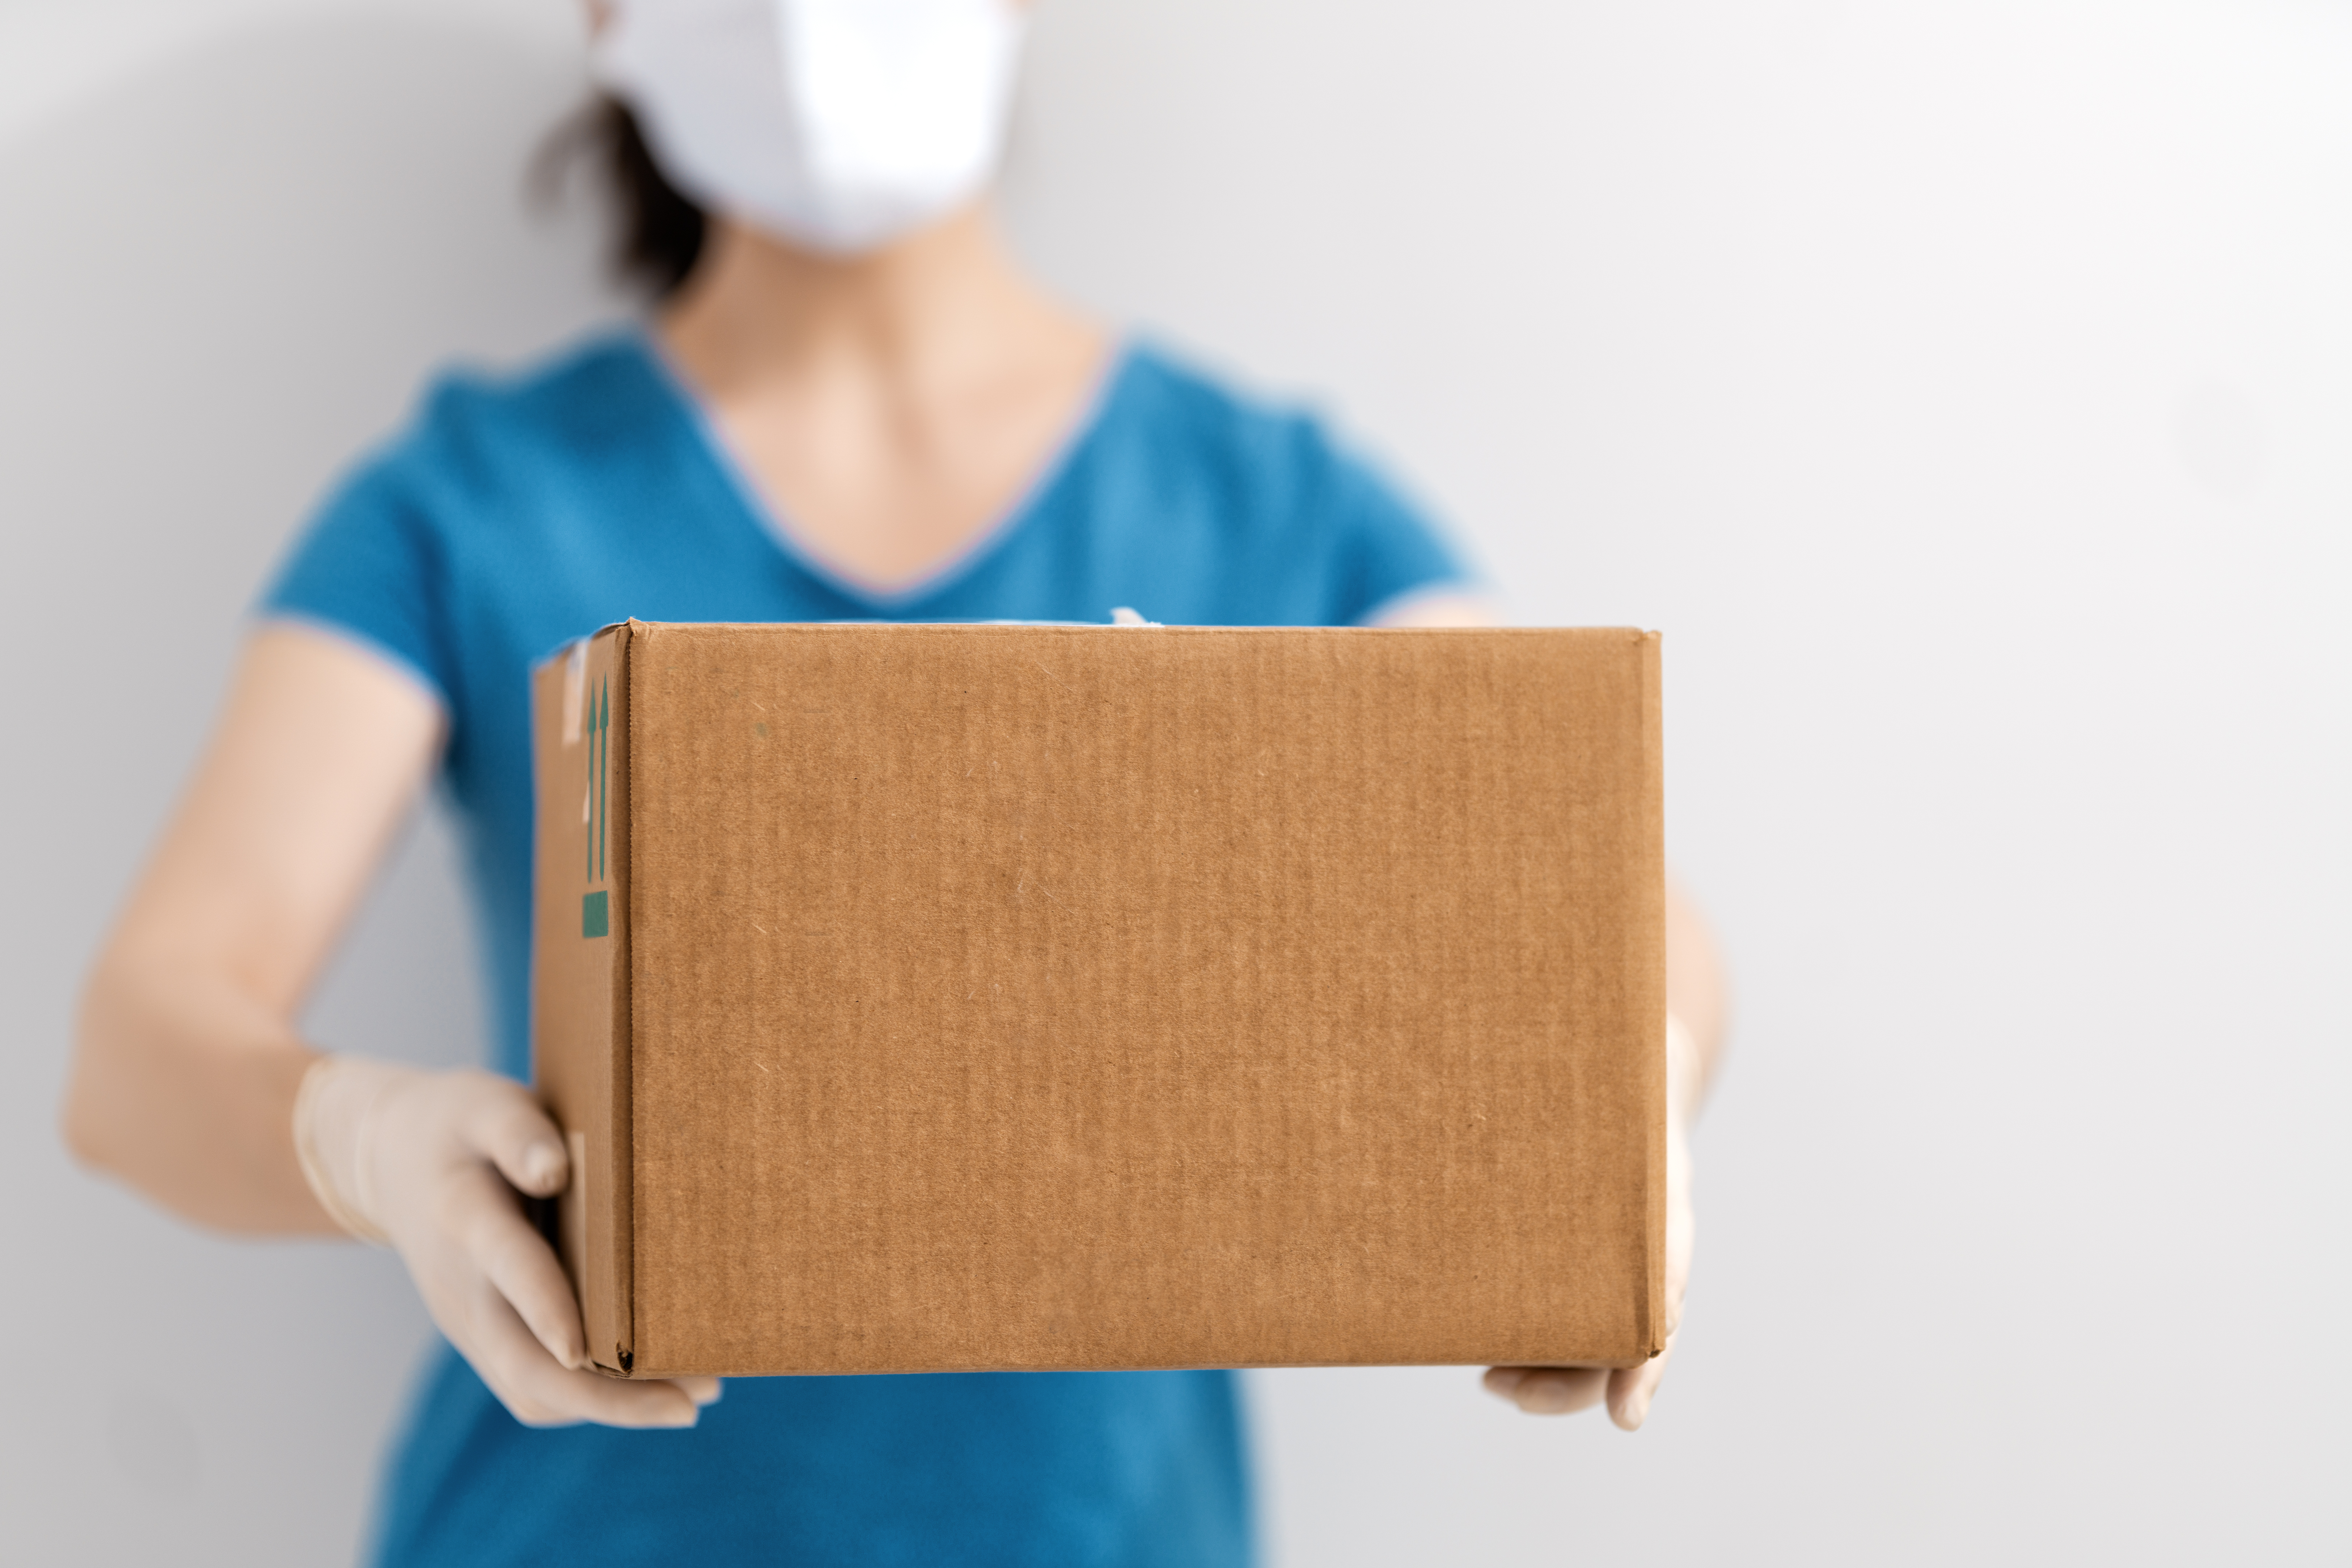 delivery-woman-holding-cardboard-box-EB7RAC3